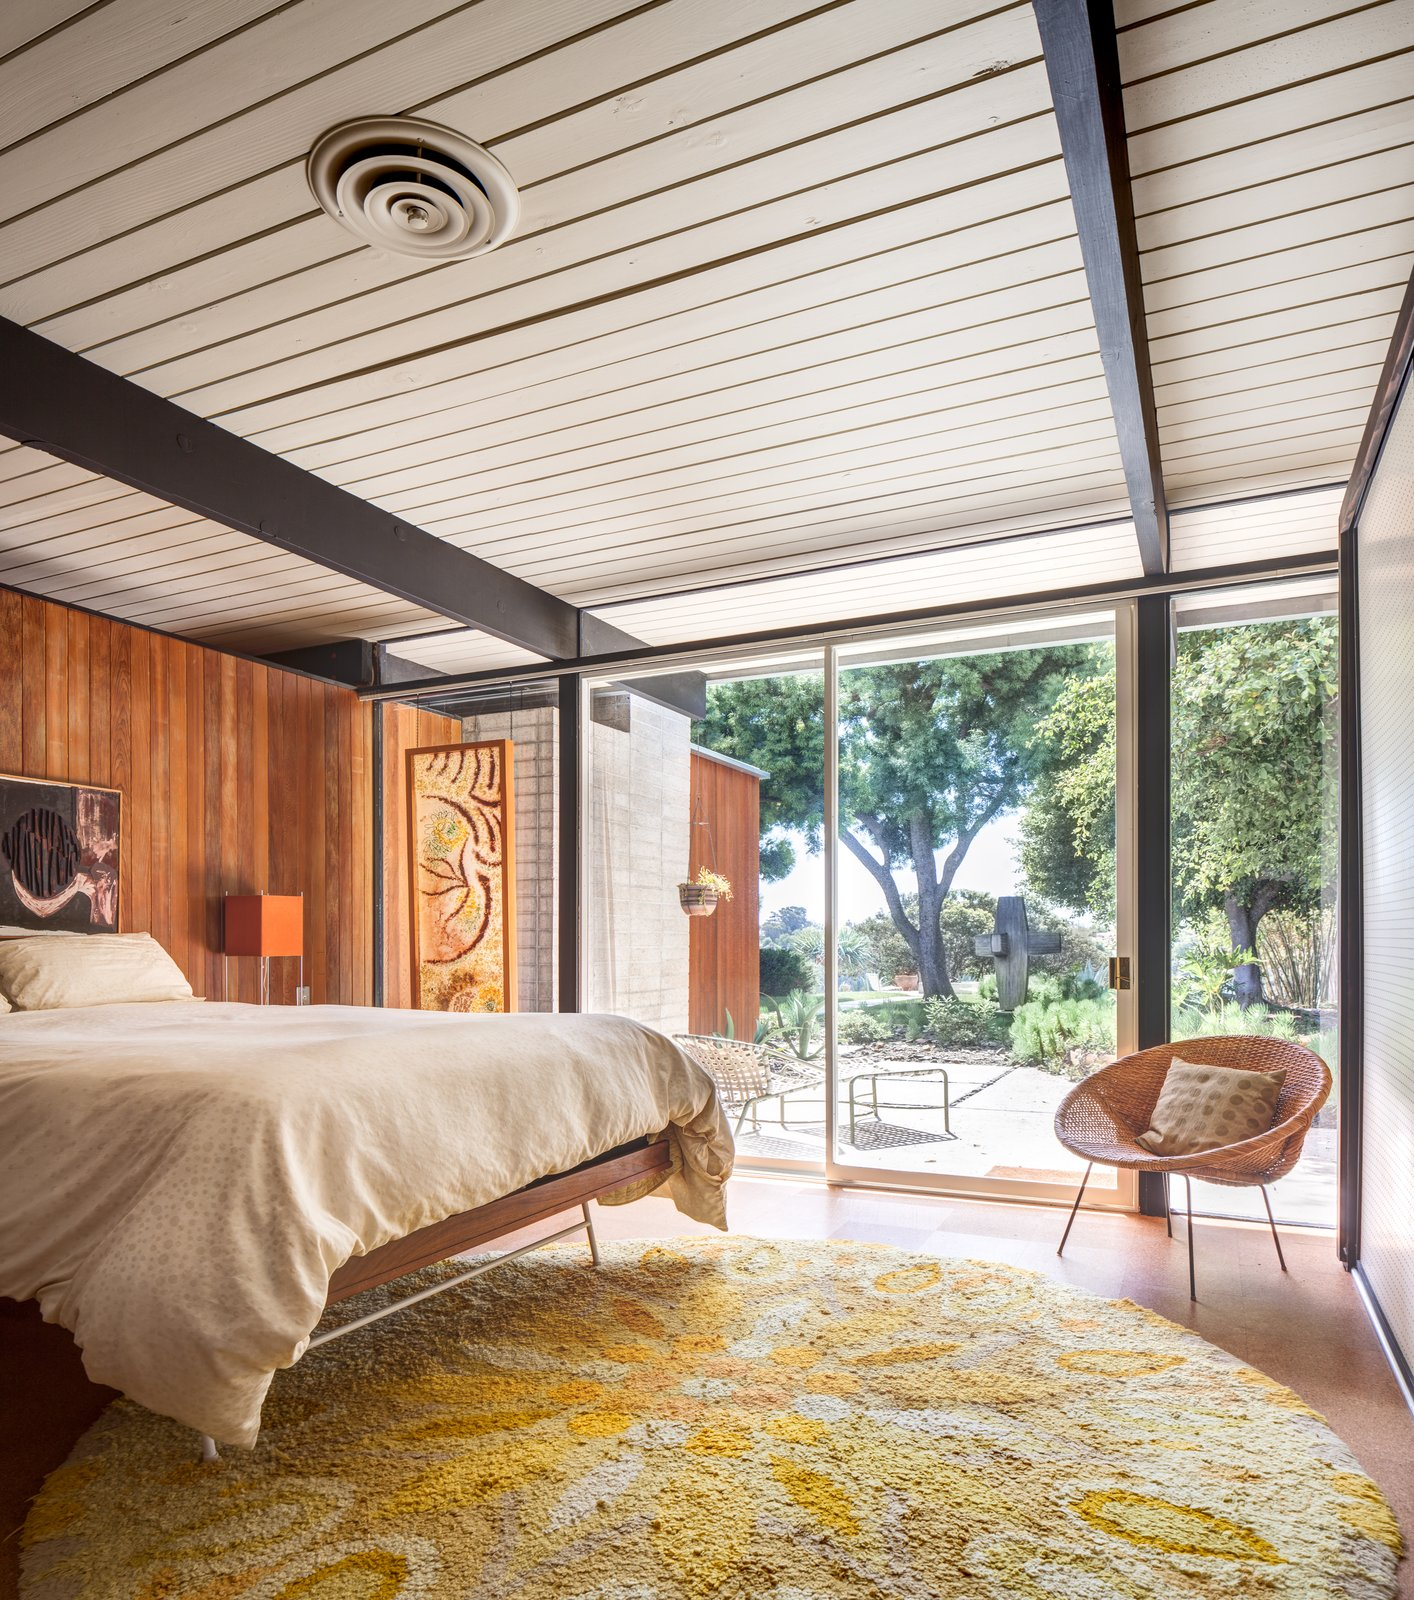 Bedroom, Bed, Table, Chair, and Cork  Bedroom Table Cork Photos from A Stunningly Restored Midcentury by Case Study Architect Craig Ellwood Asks $800K in San Diego